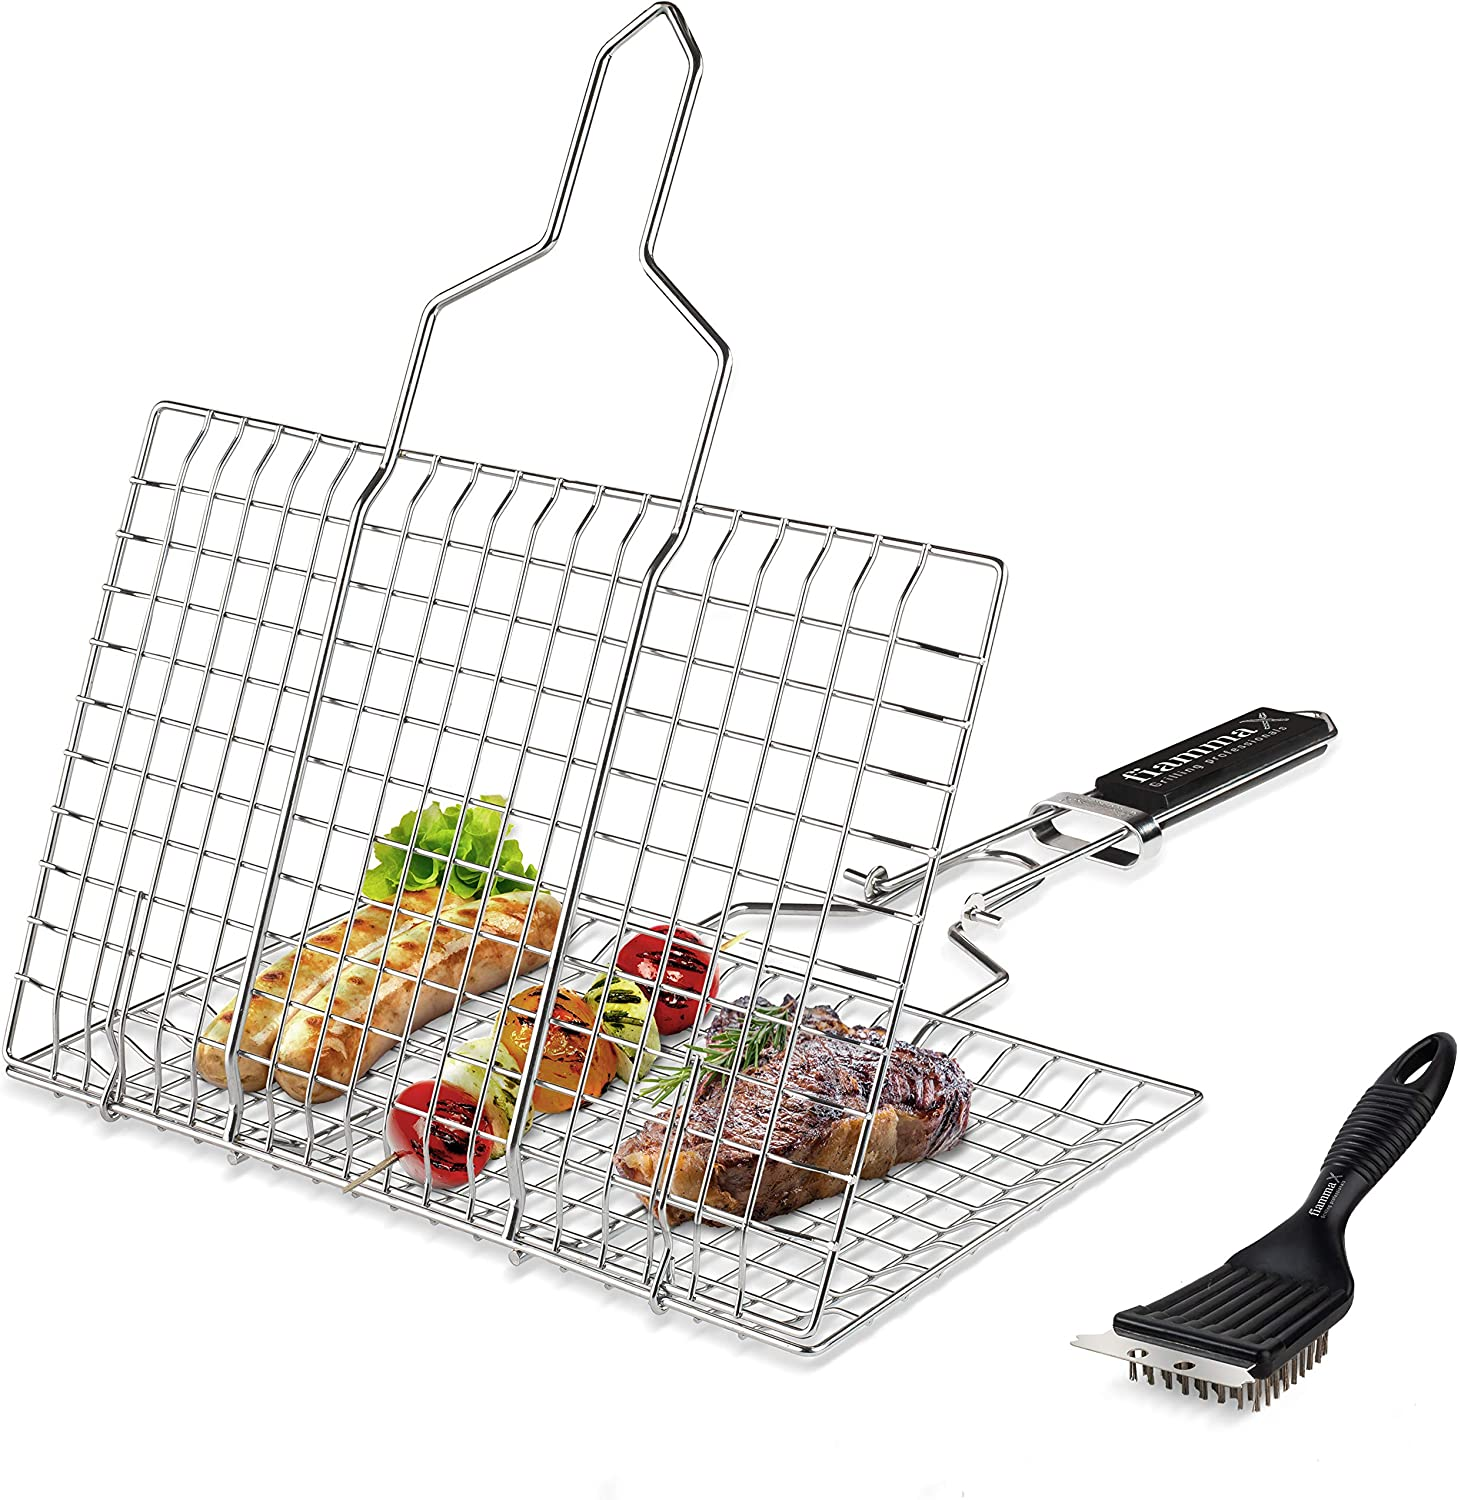 Fiamma Foldable Grill Basket – Durable Food Grade Stainless Steel Portable Grilling Basket for Fish, Meat, Vegetables, Hamburger & shrimp. Barbecue Basket with Removable Handle. Additional Grill Brush